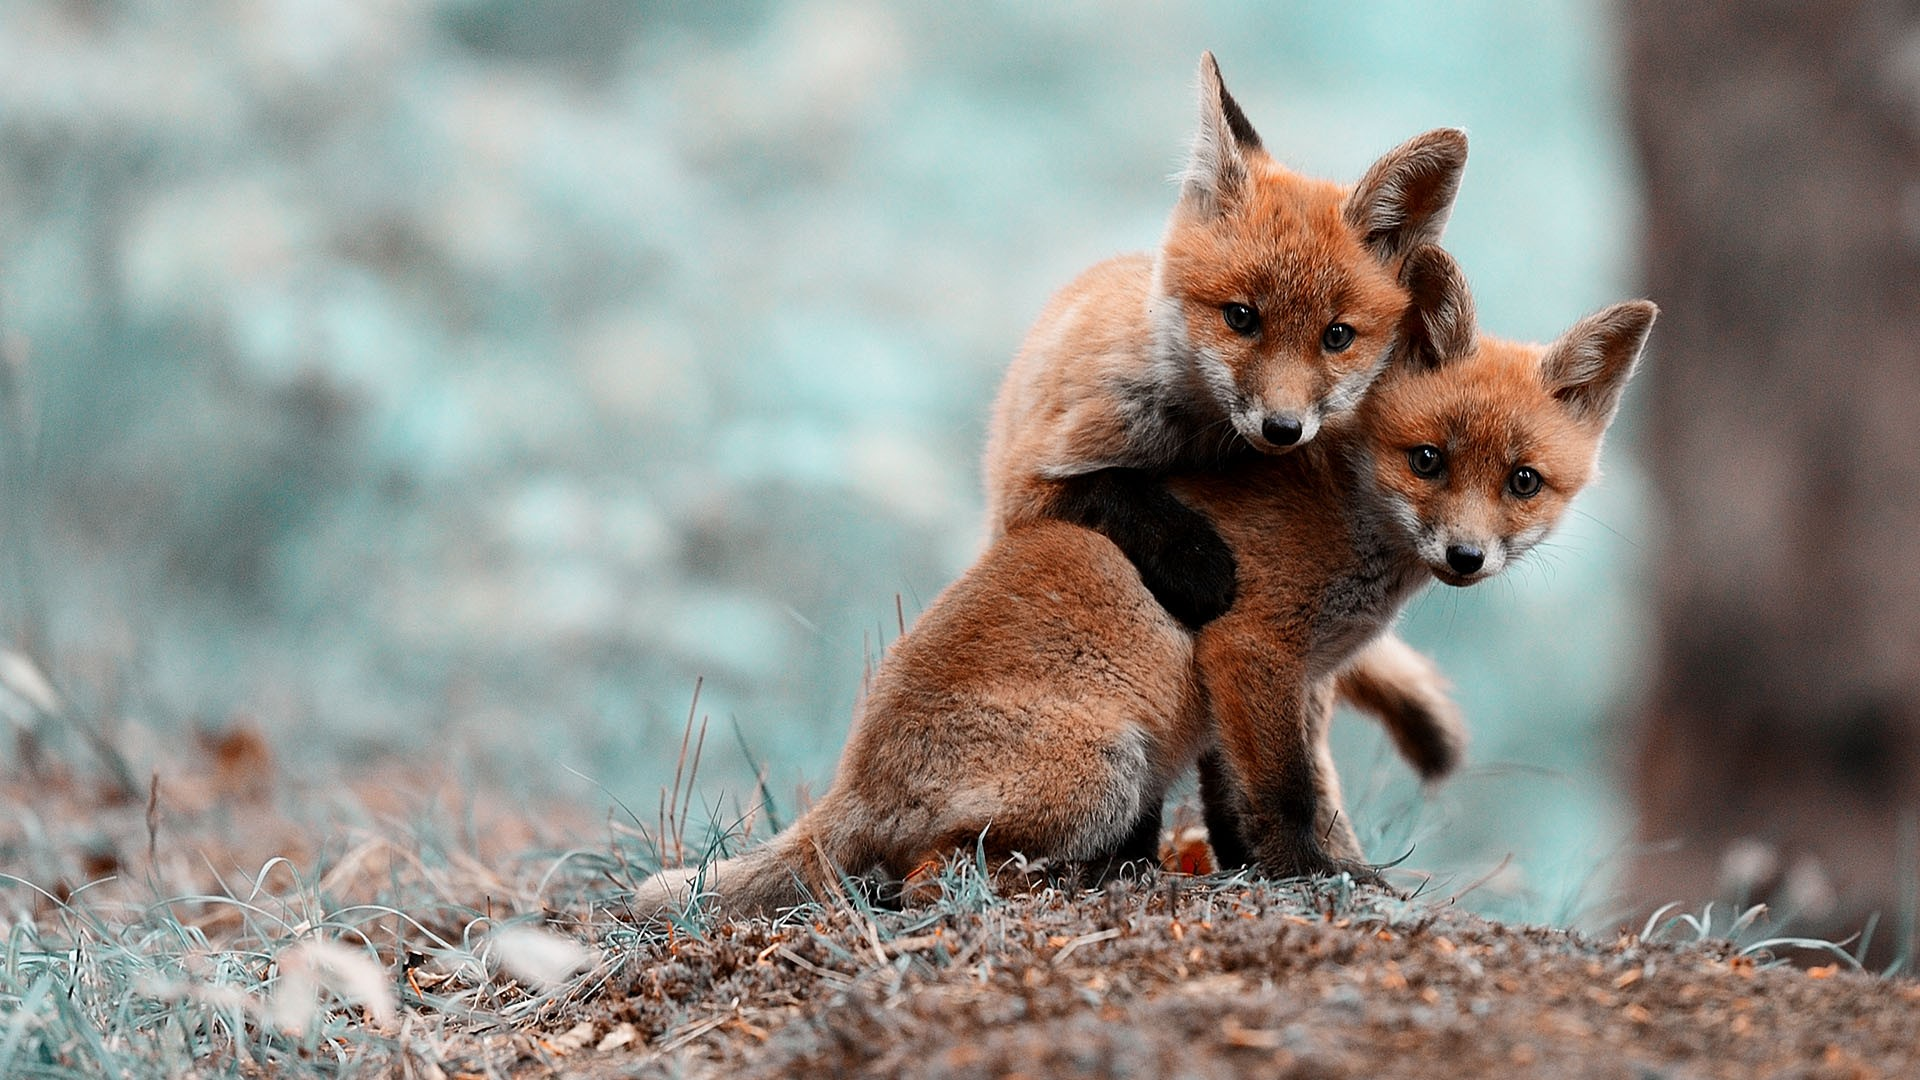 animals foxes wallpaper 2473668 wallbase cc